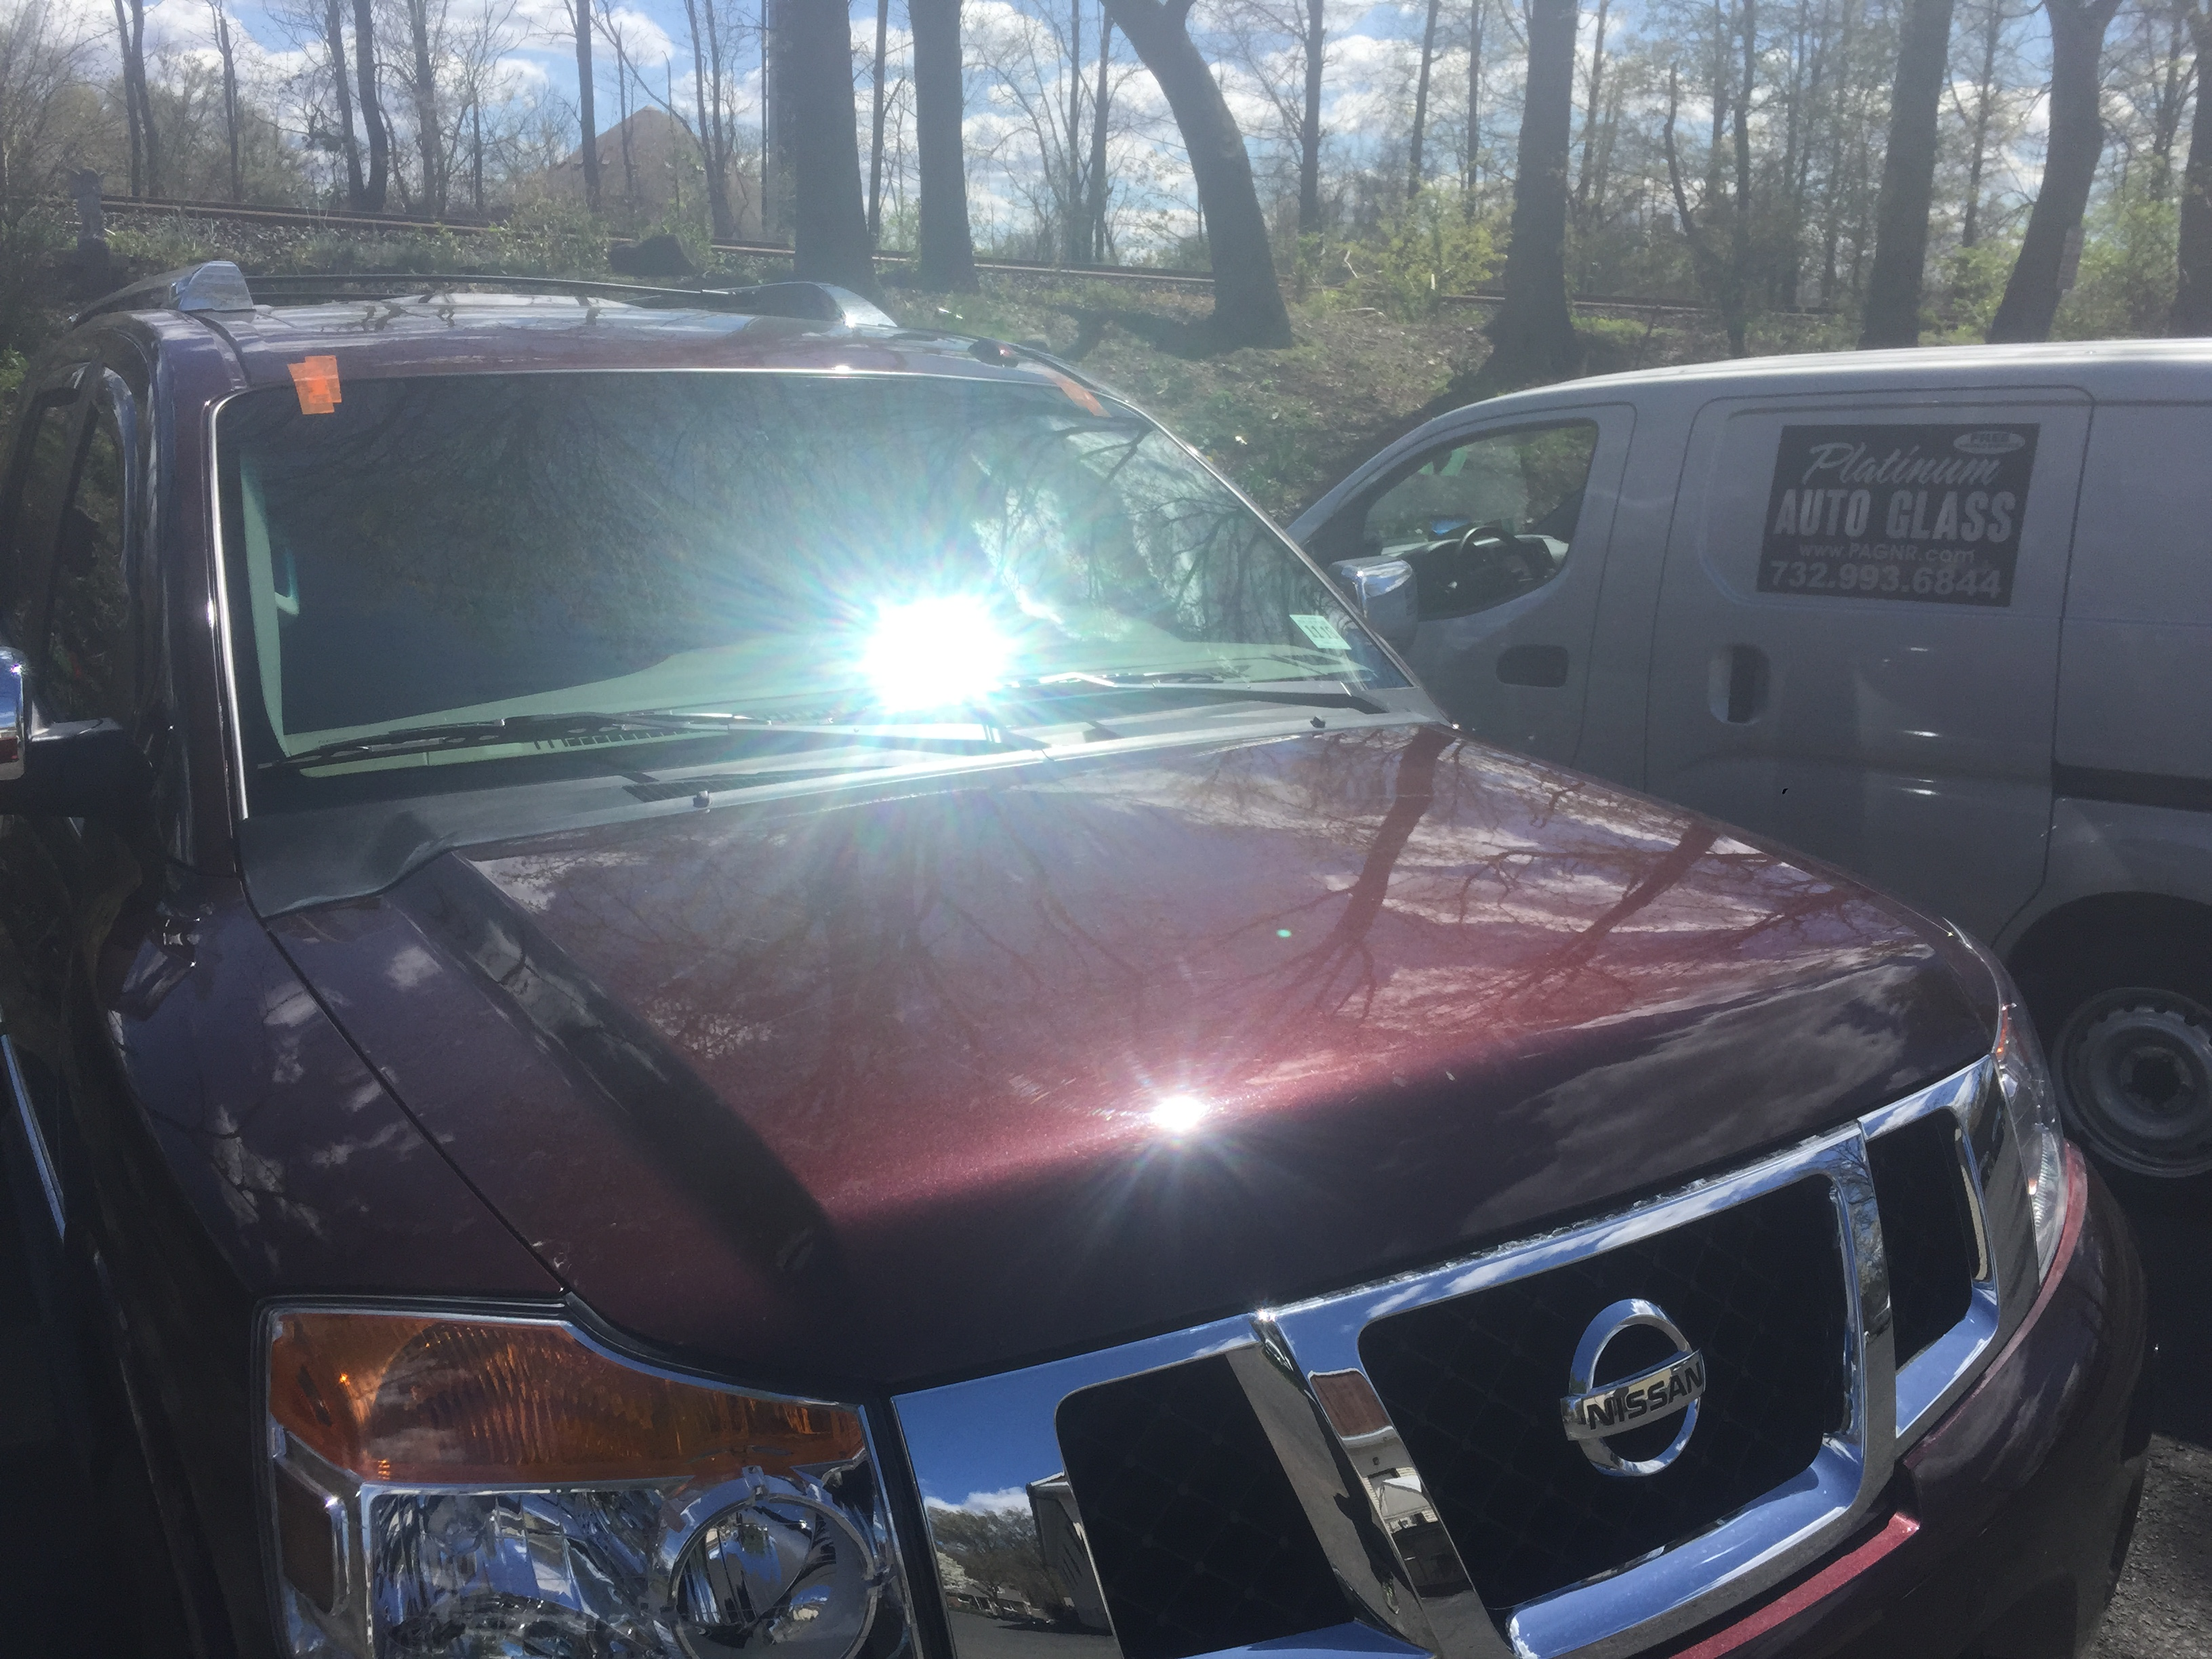 2014 Nissan Armada front window windshield replacement in New Jersey by Platinum auto glass repair  New Jersey @ platinumautoglassnj.com